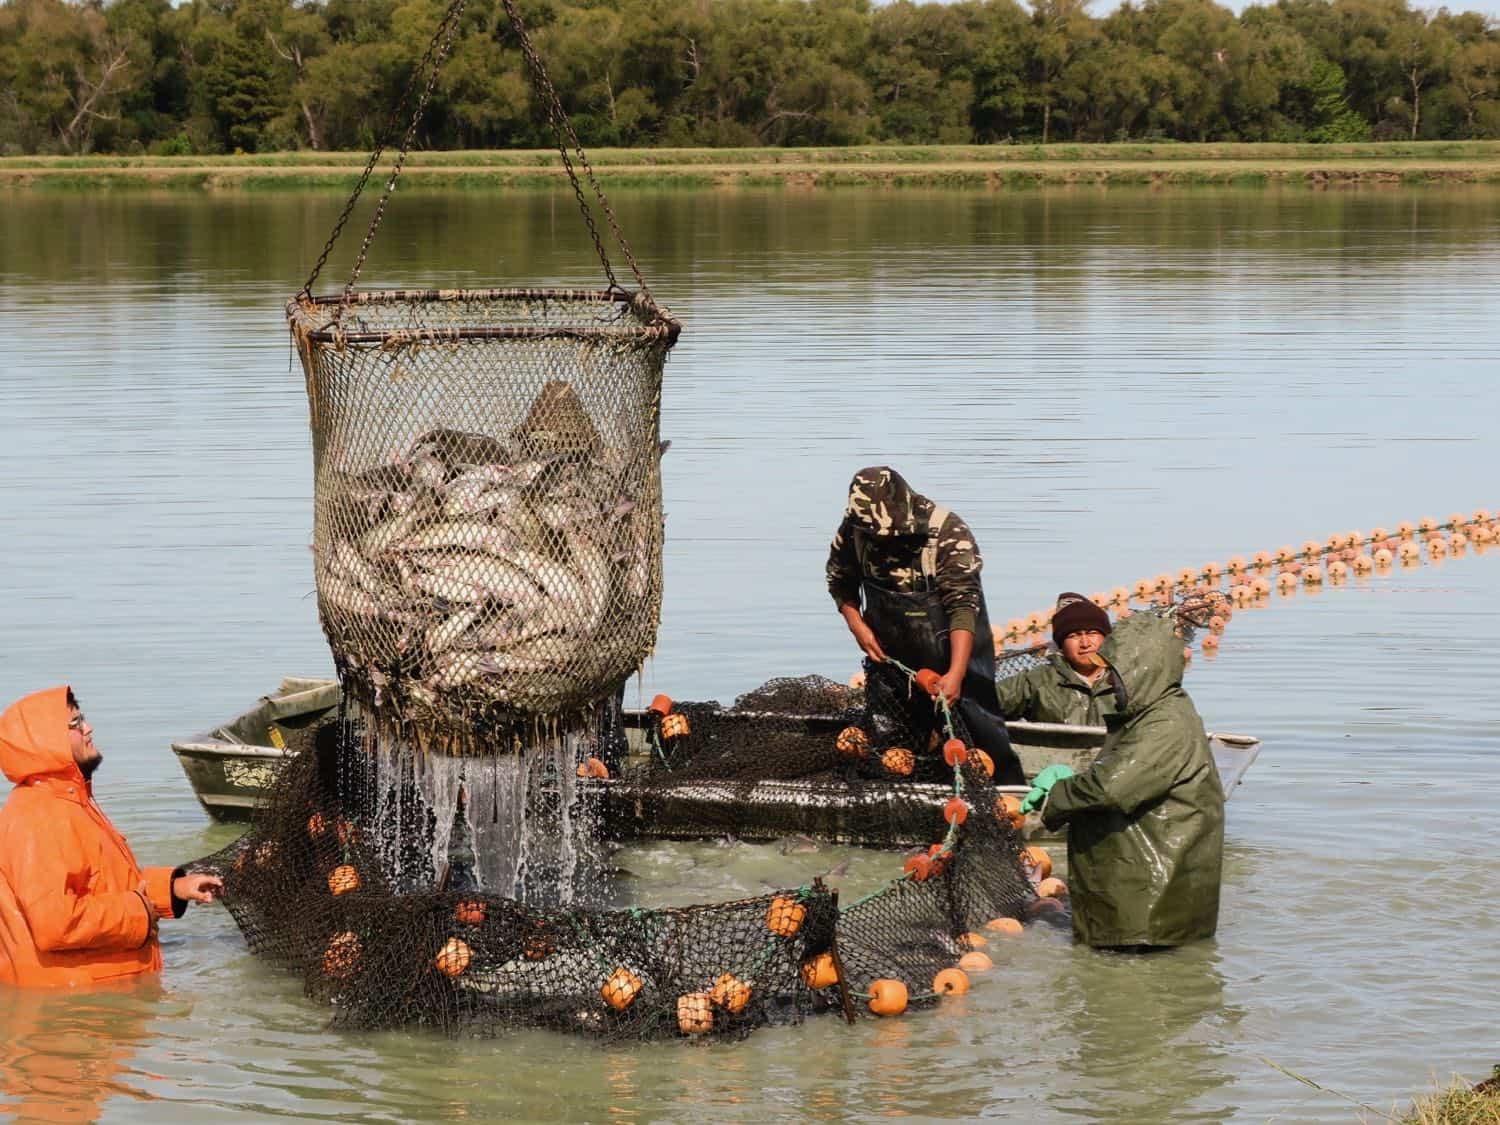 Men in the water hauling in a basket of catfish